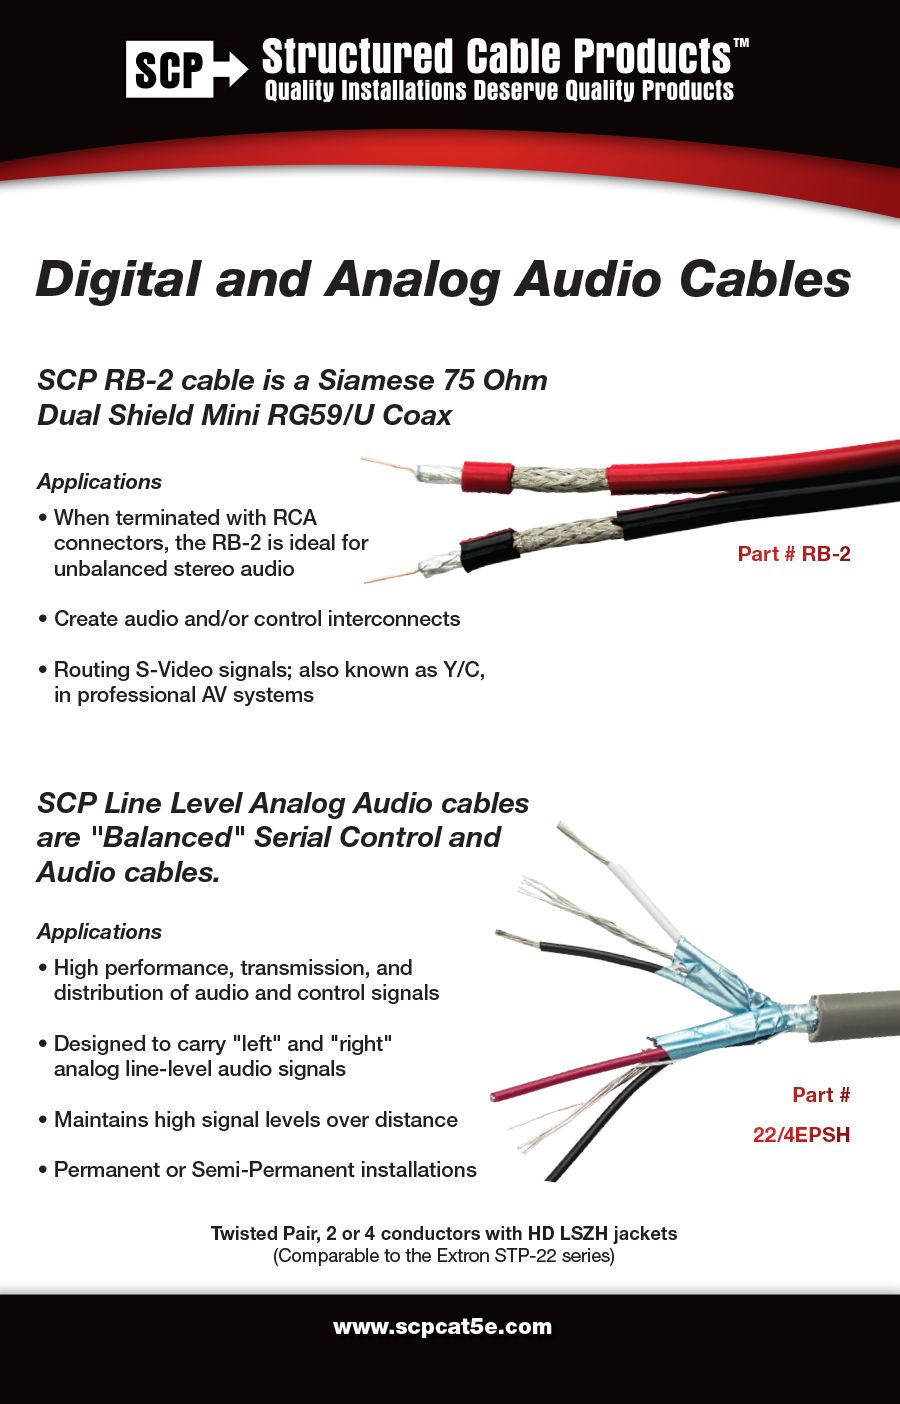 Structured Cable Products 22 2esh Balanced Line Level Audio 2c 22 Awg Tc Twisted Pair Black Red Al Fo Structured Cabling Signal To Noise Ratio Audio Cables